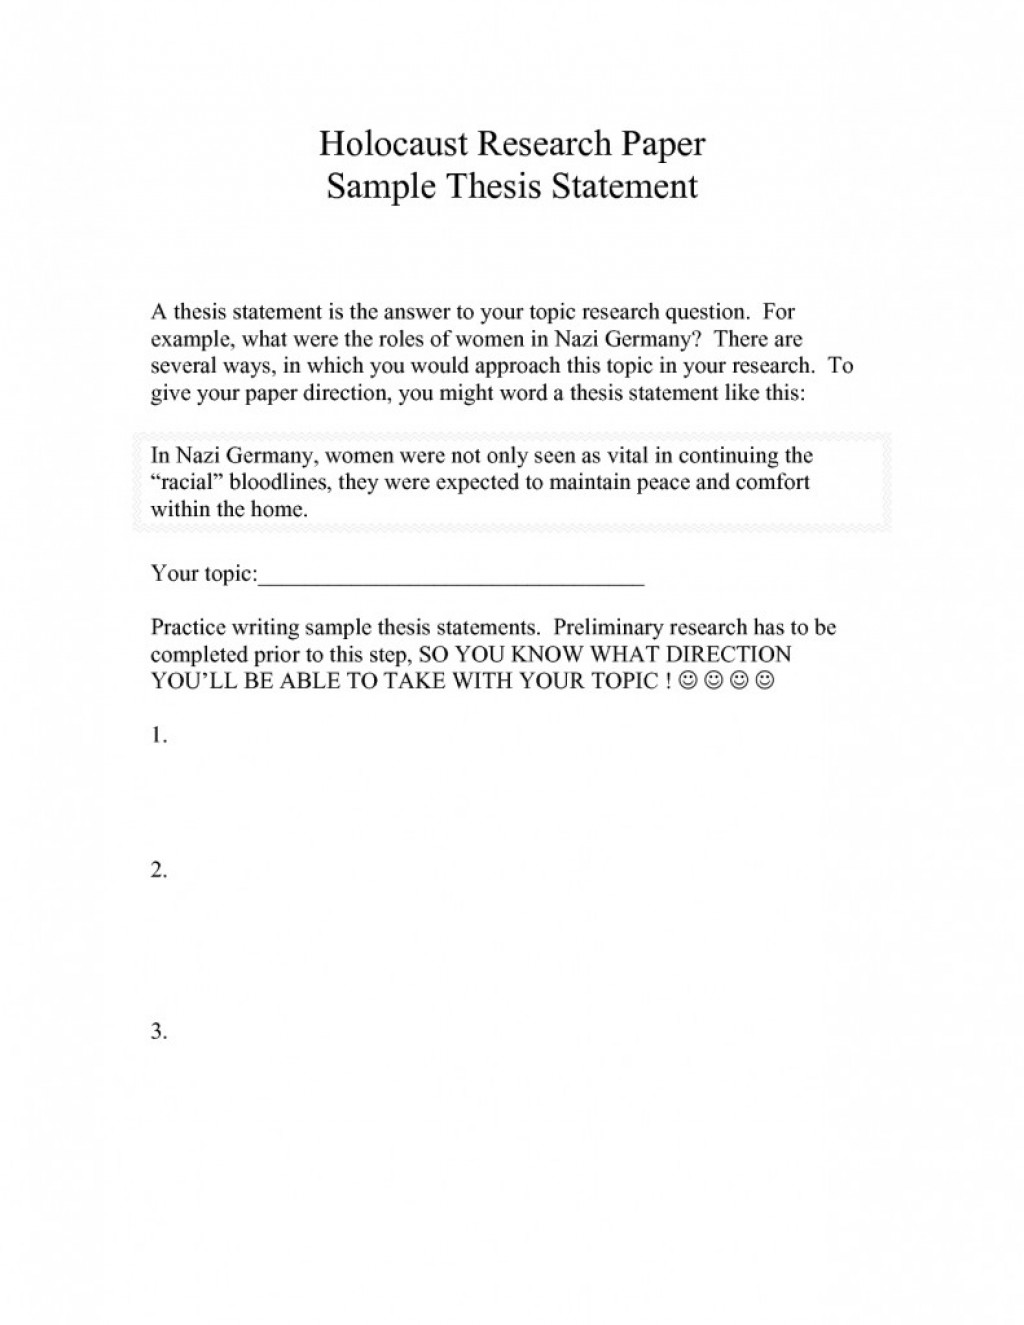 016 Research Paper Childhood Obesity Topics Argumentative Essay Term Writing Service Thesis Business Law Questions Statement 791x1024 Incredible On Example Photo Awesome Articles Large